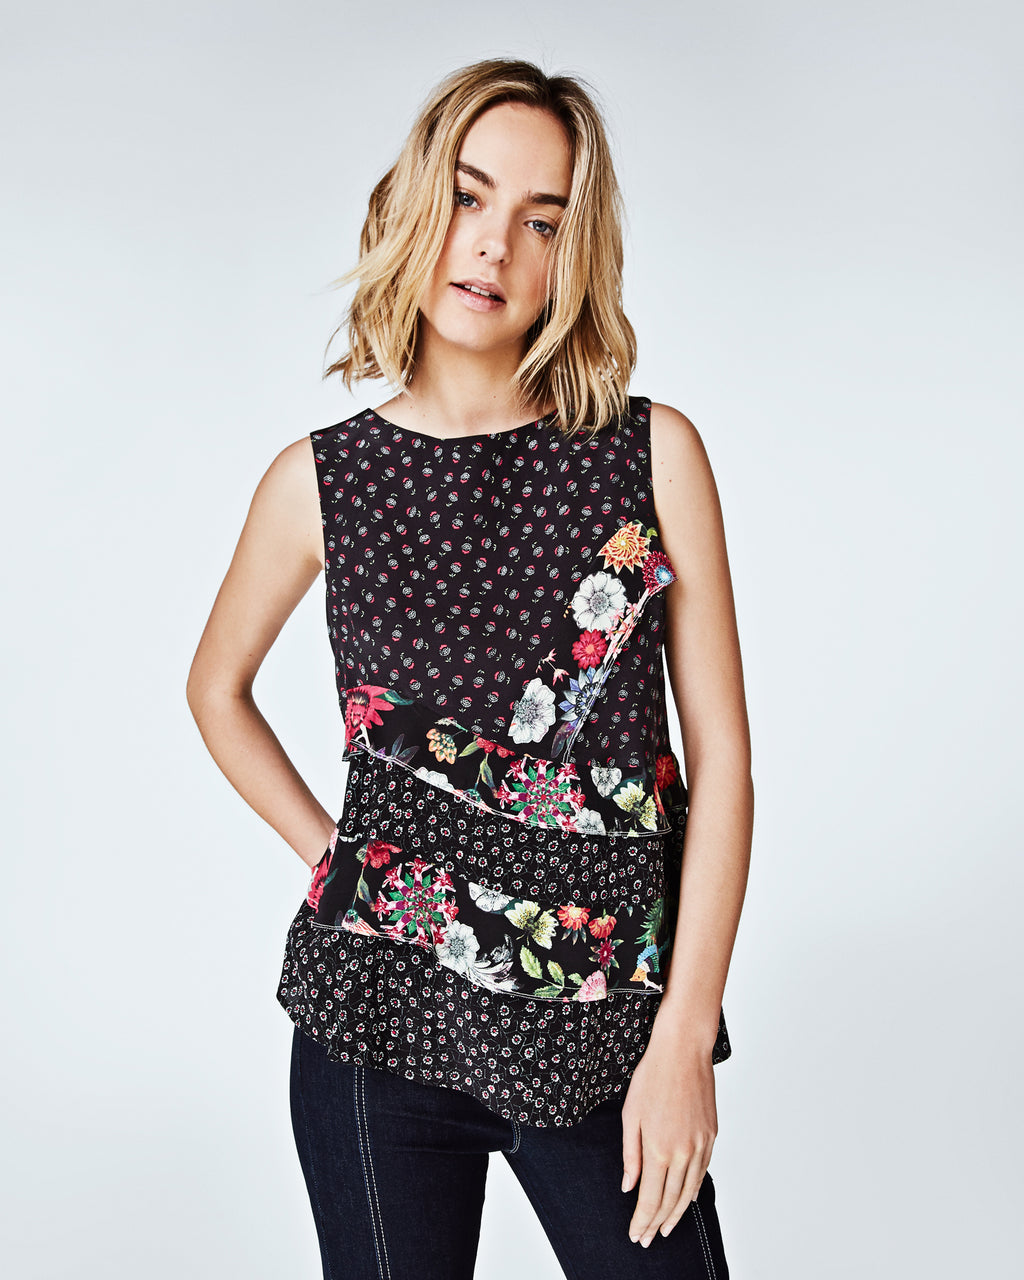 BG10294 - DITZY DANDELION BOAT NECK TOP - tops - blouses - This silk tank features contrasting floral prints and asymmetrical ruffles for a subtle edge on a feminine vibe. With a boat neckline, this top can be worn with a blazer for a more sophisticated look, or paired with jeans and sneakers for a street style take. Finished with a back concealed zipper for closure and unlined.